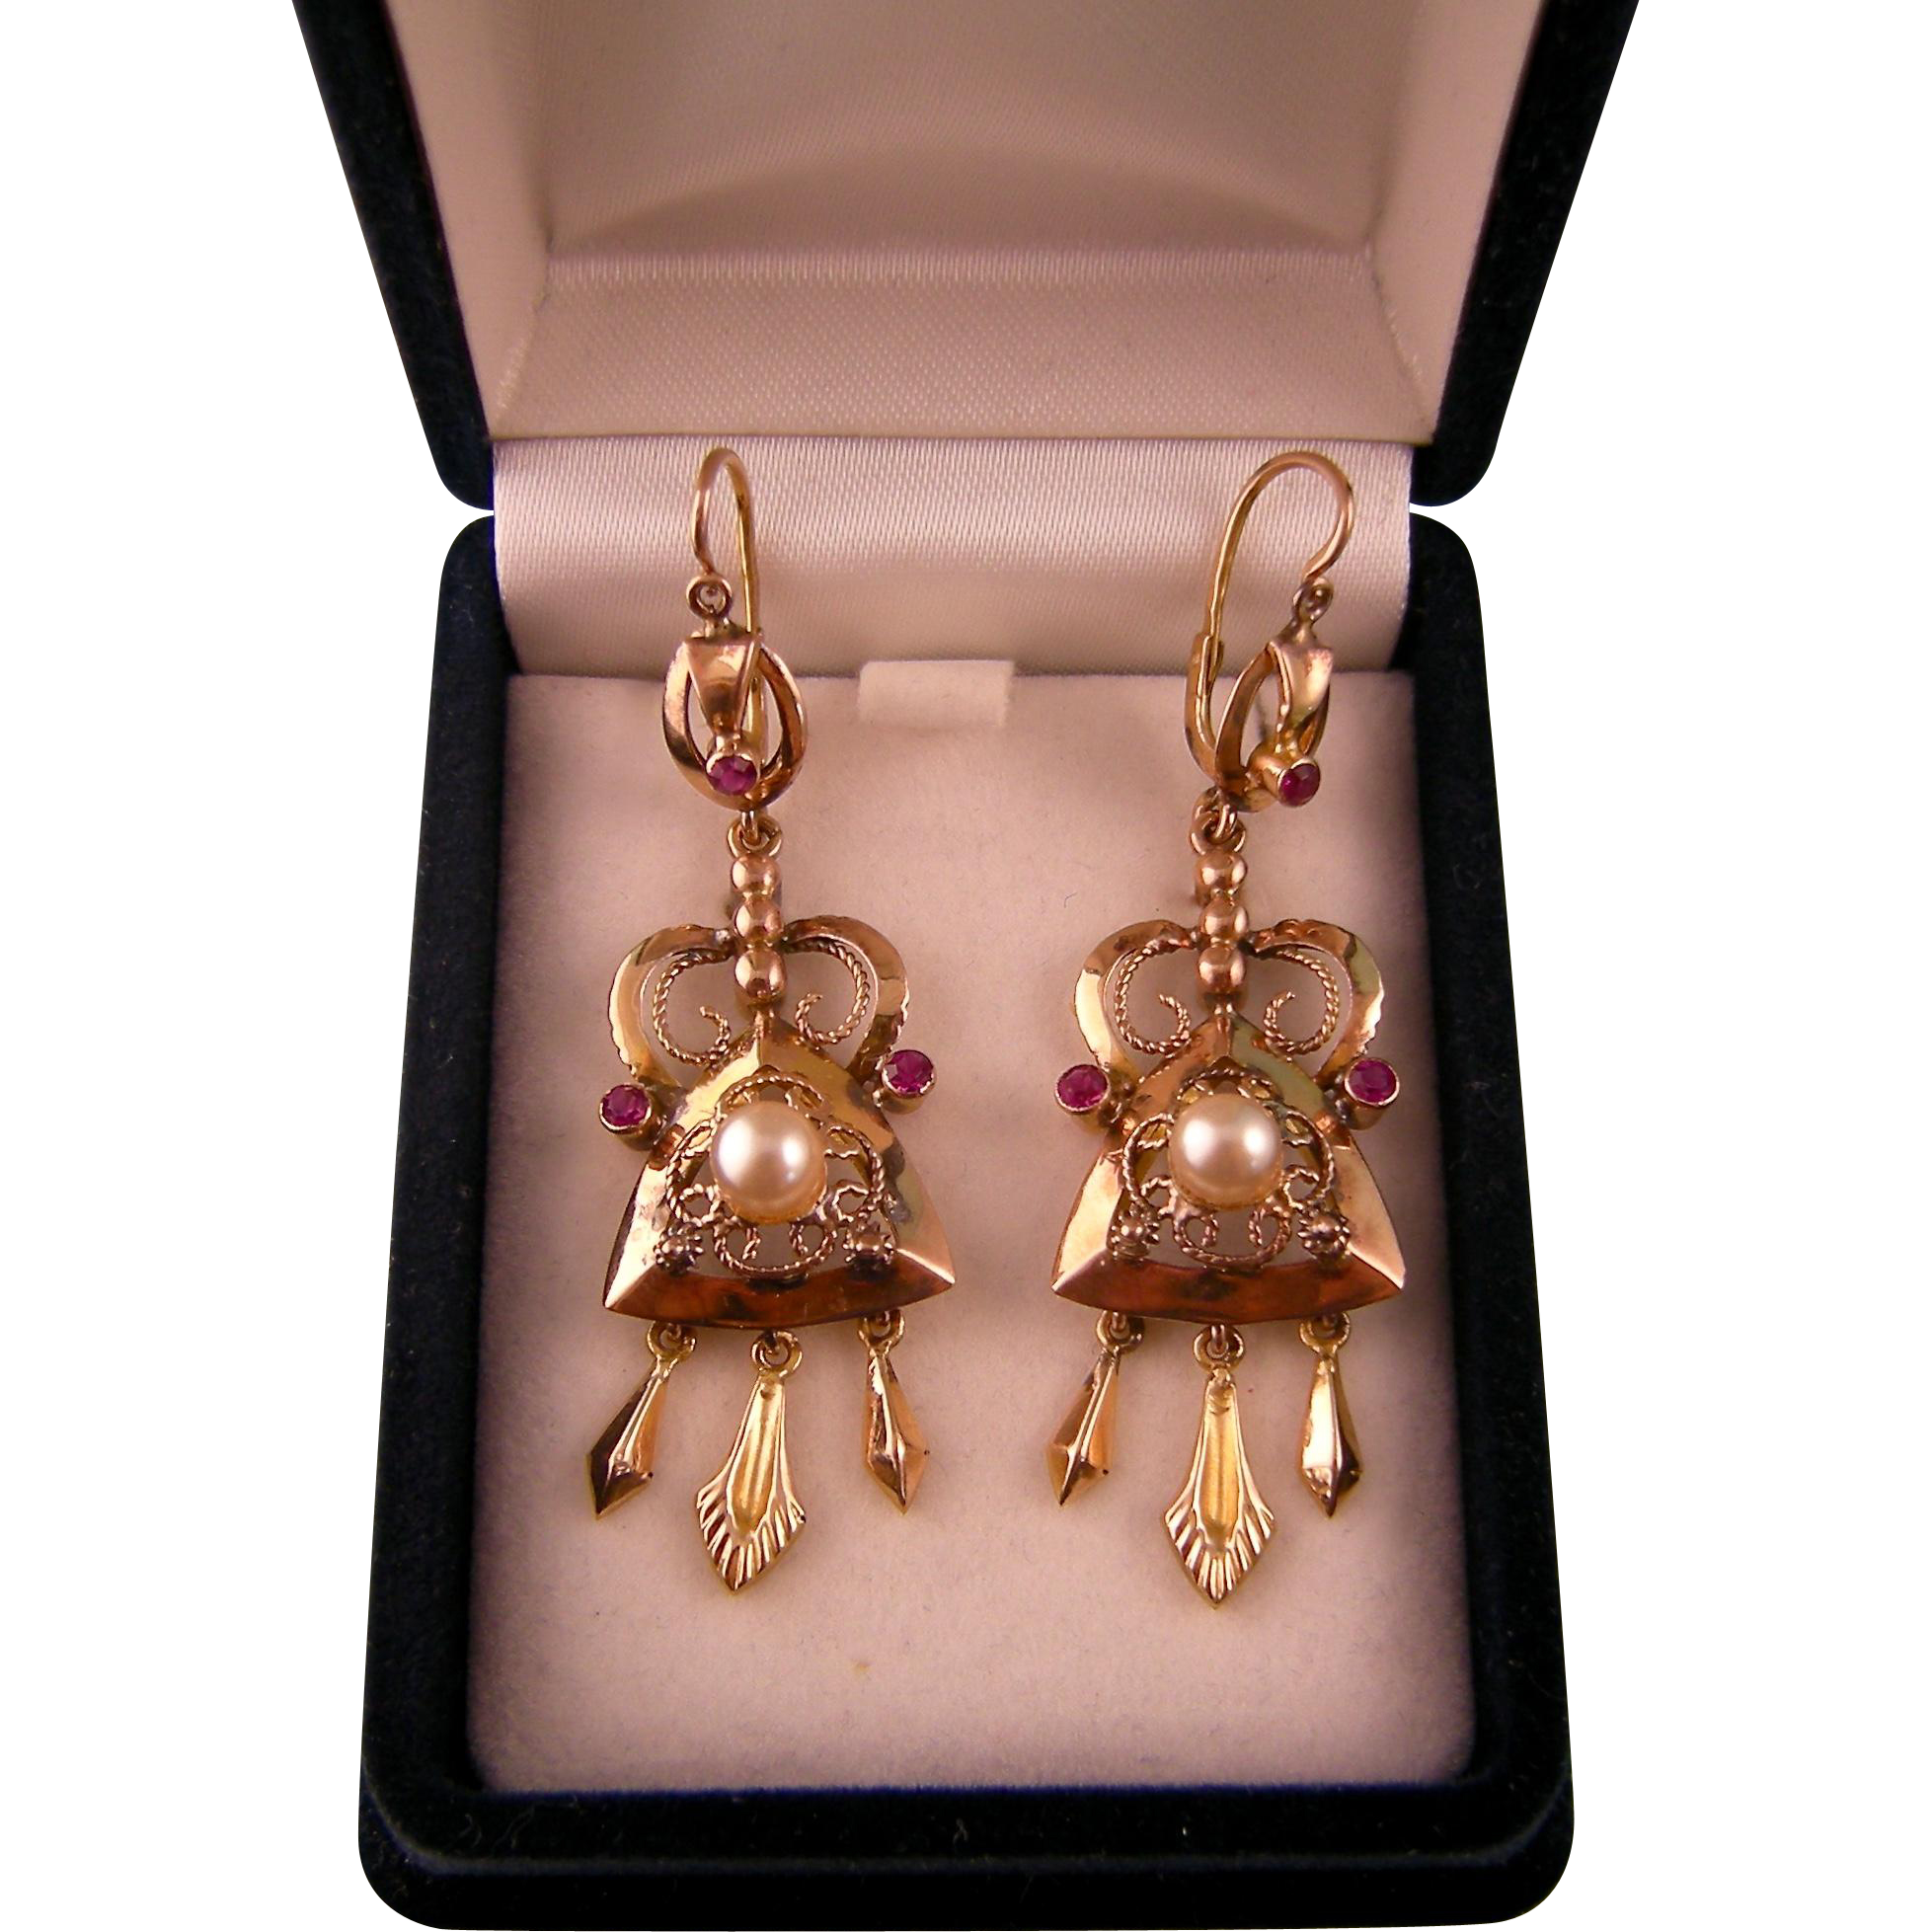 Antique Victorian Ornate Earrings, 14K, with Cultured Pearls, Ruby Stones, and Dangles, 2-1/4""